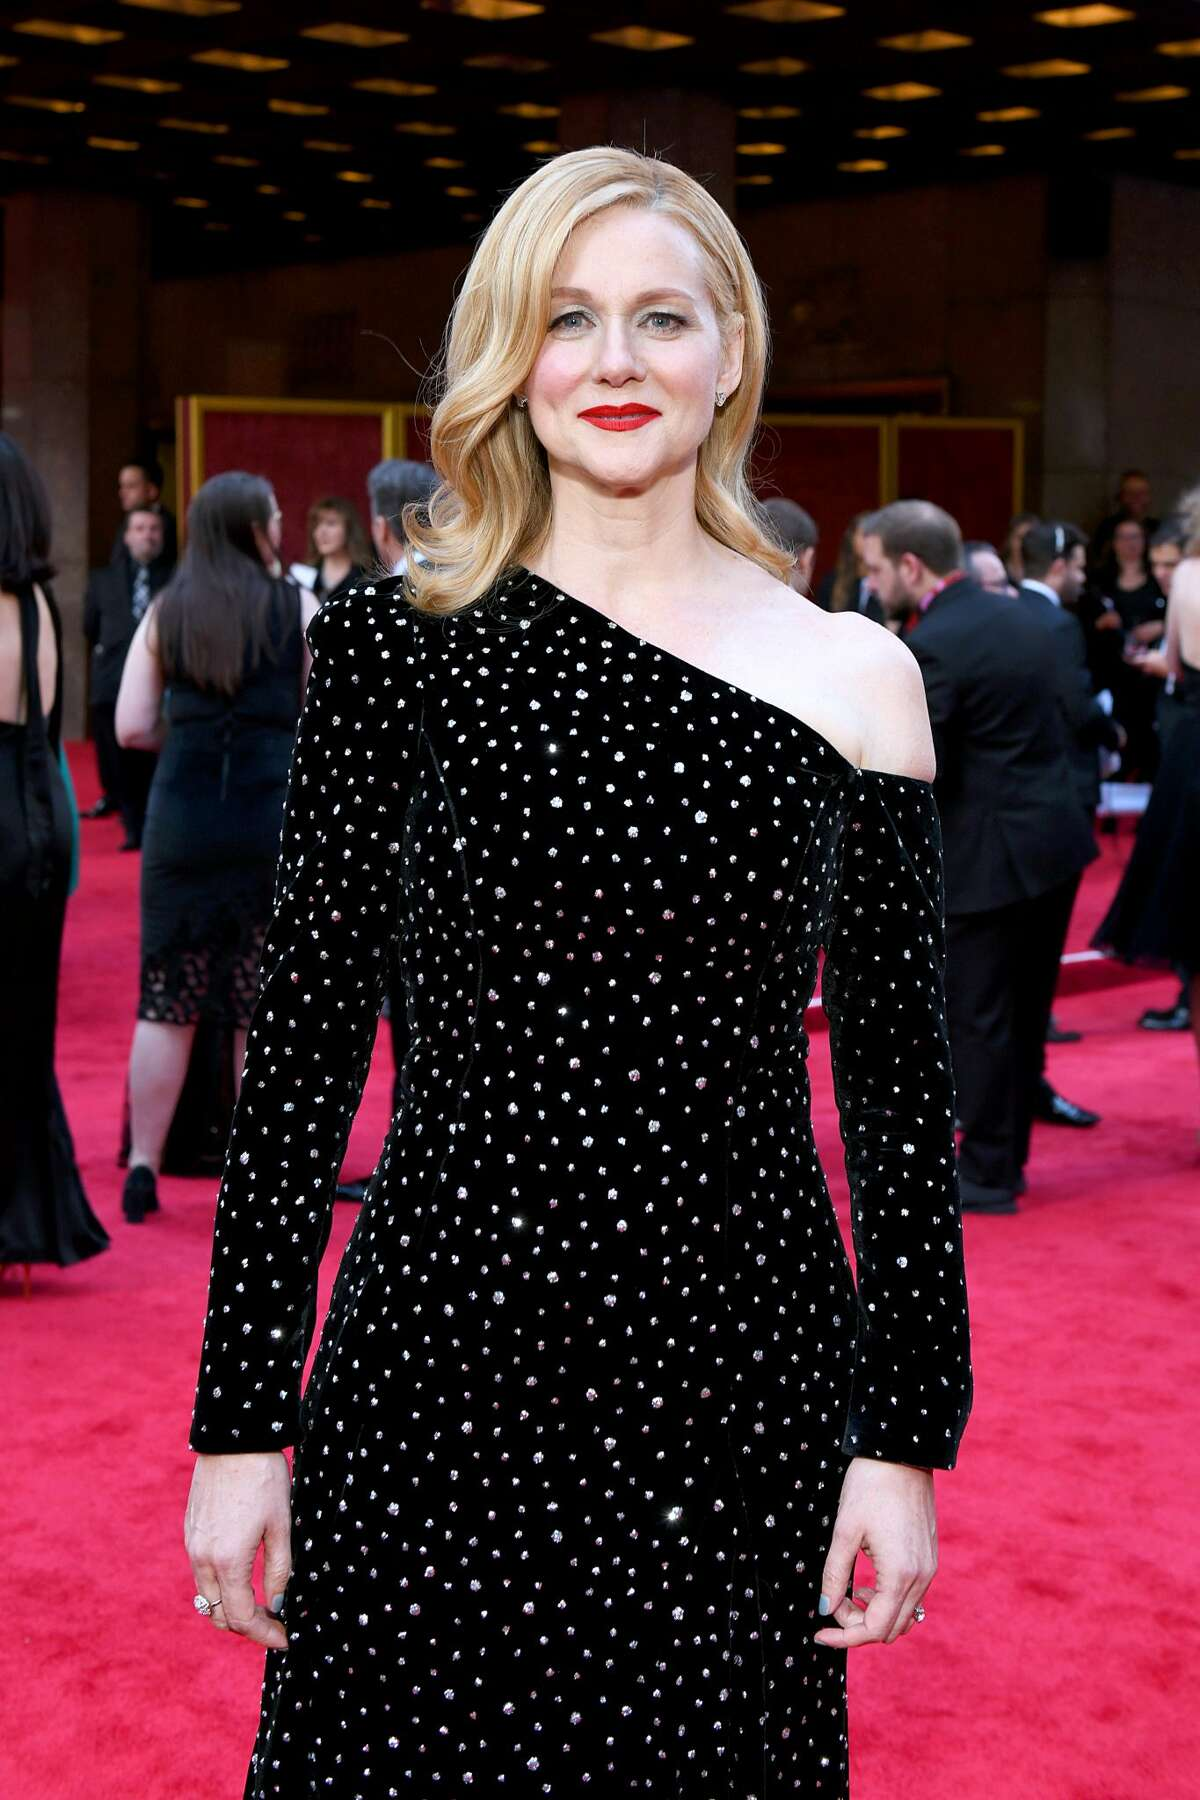 """Laura Linney attends the 73rd Annual Tony Awards at Radio City Music Hall on June 09, 2019 in New York City. 2020: Laura Linney Linney is an Emmy Award-winning actress most recently appearing in the Netflix show """"Ozark."""" She received her sward virtually as the Pudd'nhead festival was not held in person during the begining of the pandemic."""